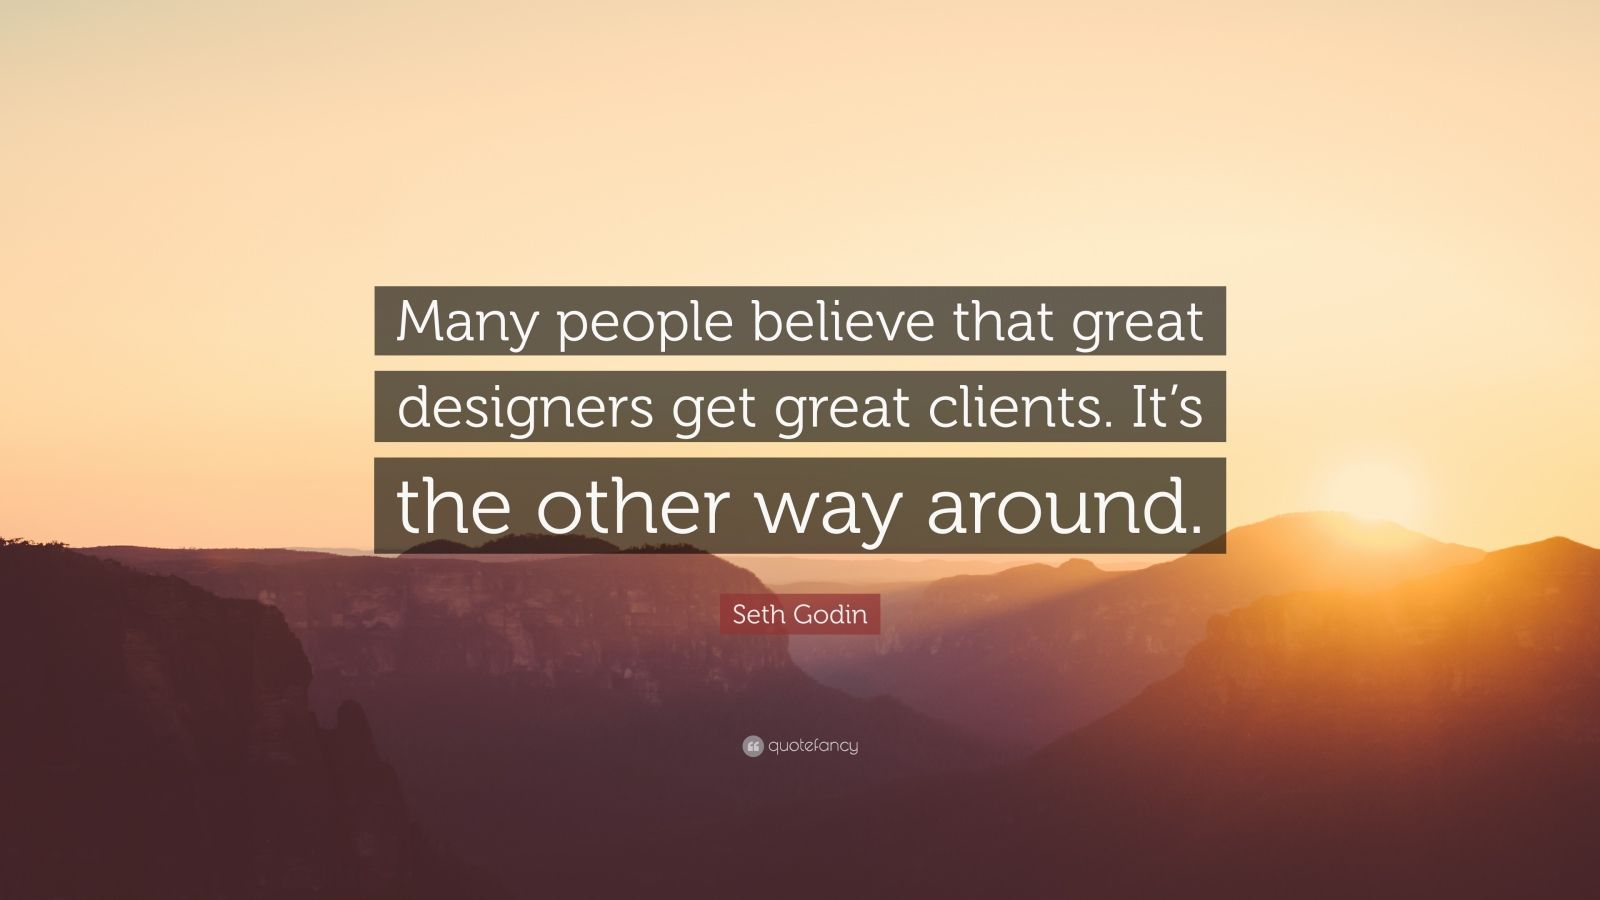 """Seth Godin Quote: """"Many people believe that great designers get great clients. It's the other way around."""""""